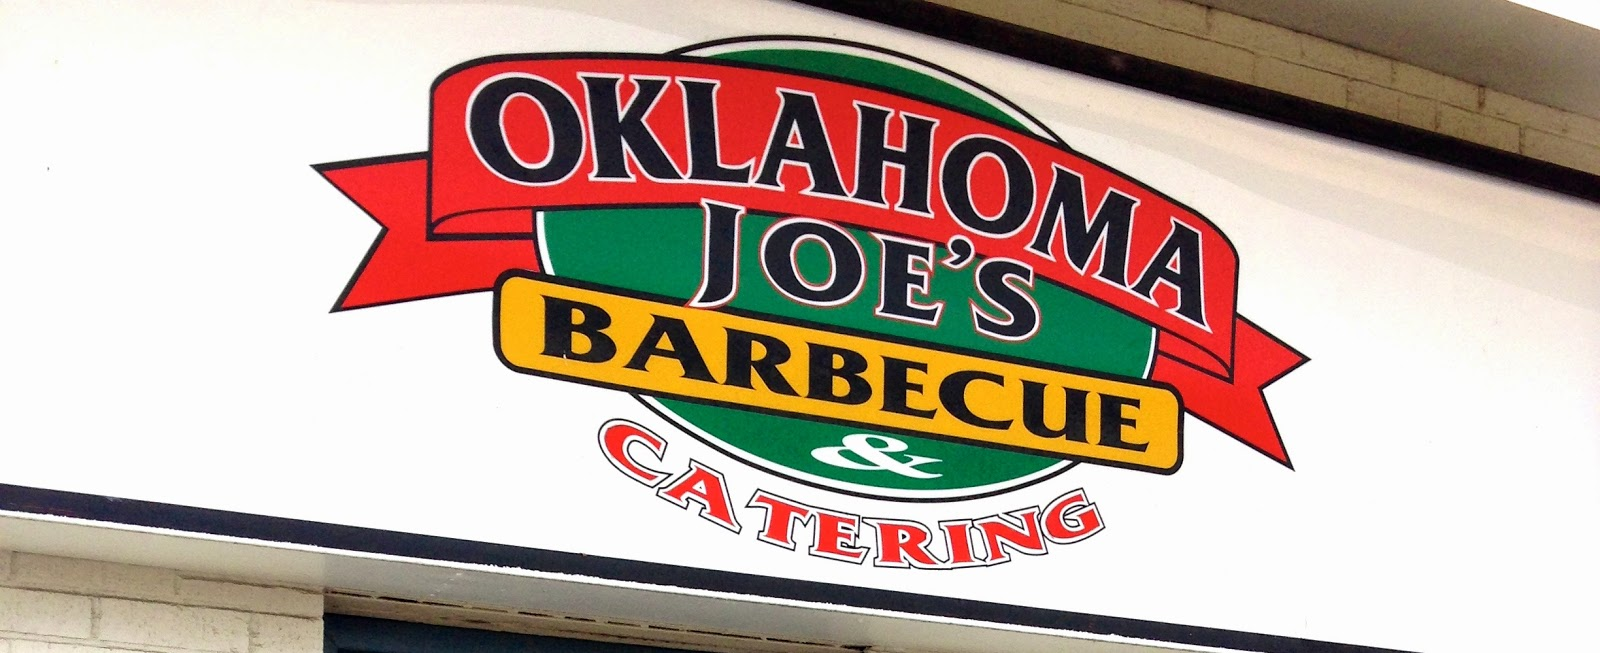 And finally... The real reason we drive over 18 hours to Kansas City MO. Seriously. The best BBQ on the planet. Yes it is in KANSAS CITY and it's called OKLAHOMA Joe's!